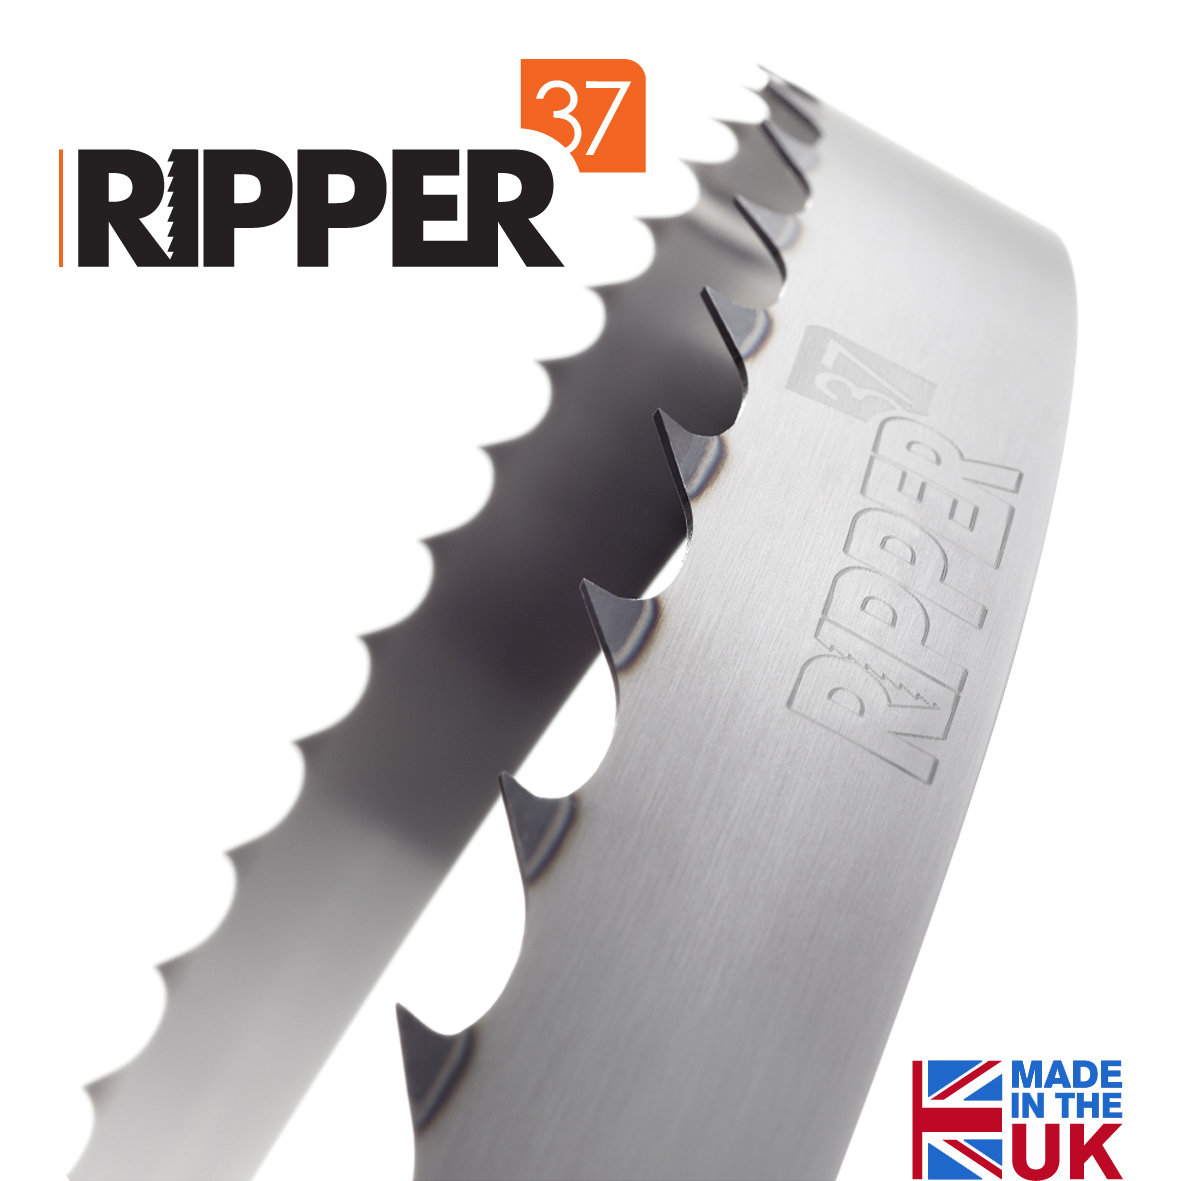 Timbery R100 Band Resaw Ripper37 Blades